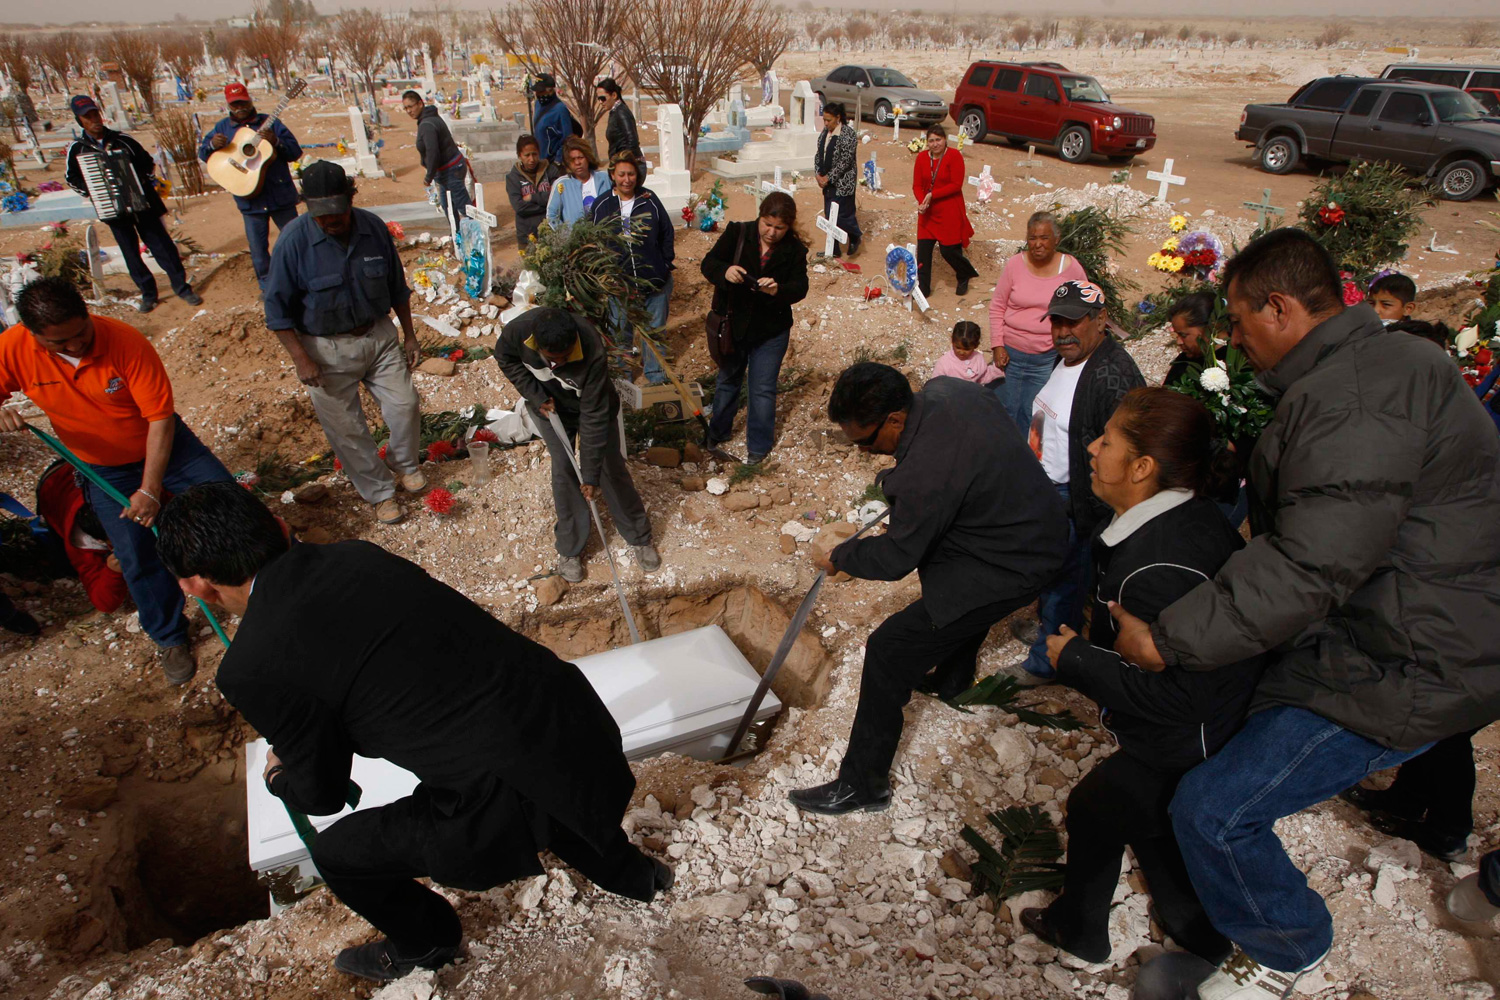 Feb. 28, 2012. Friends and family members mourn as the coffin of Garcia Pena is lowered into the ground at a cemetery on the outskirts of Ciudad Juarez, Mexico.